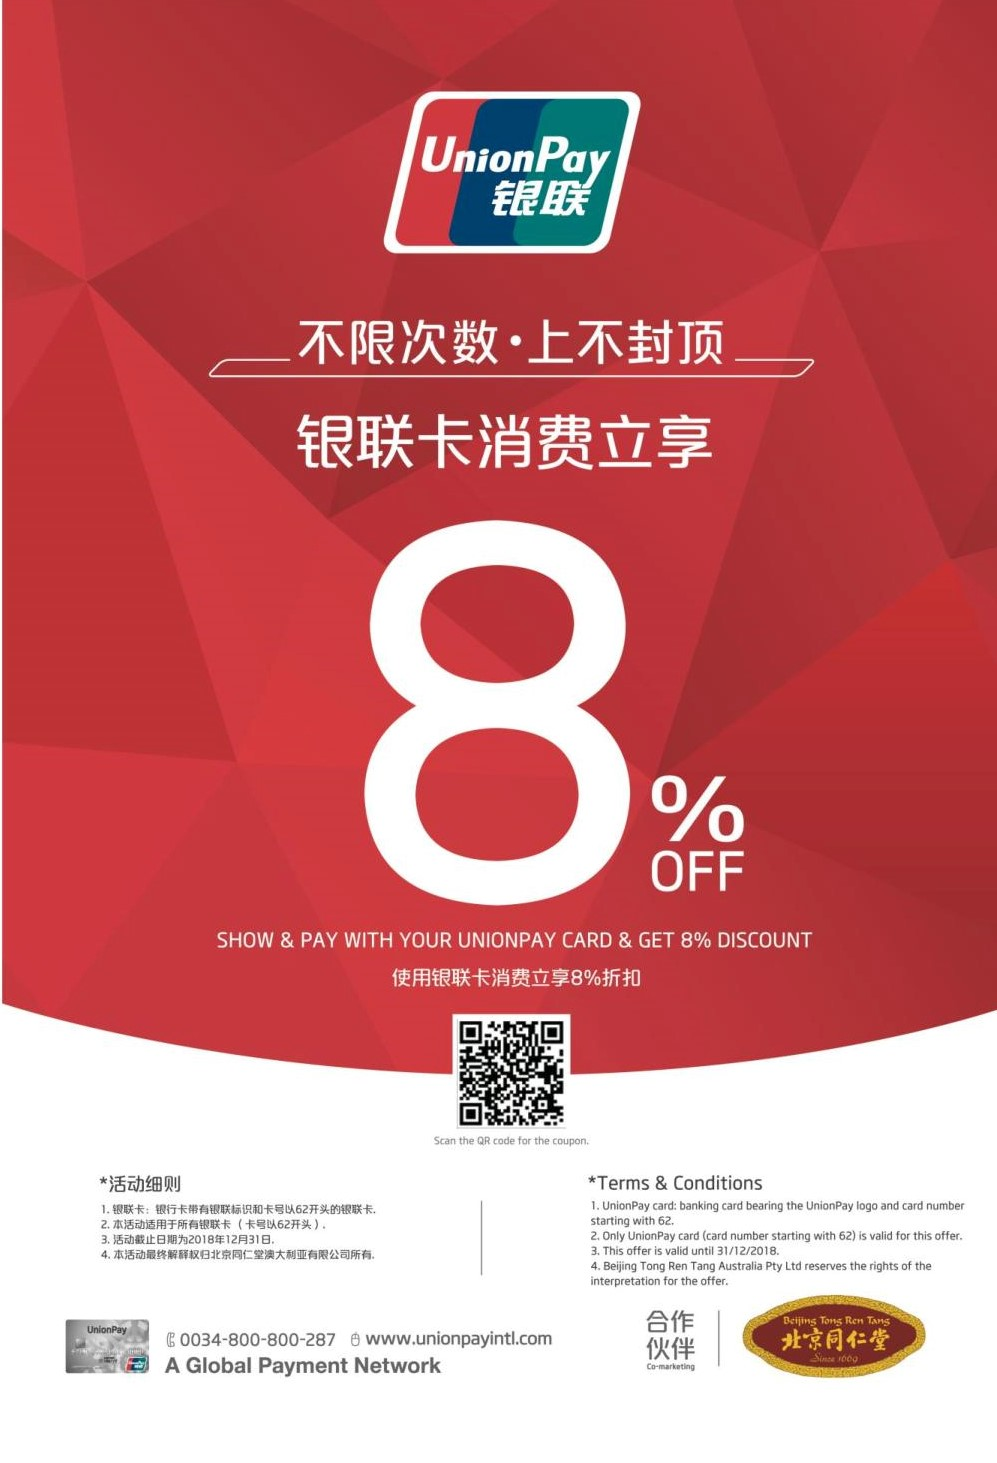 Show & Pay with your Unionpay card & get 8% discount